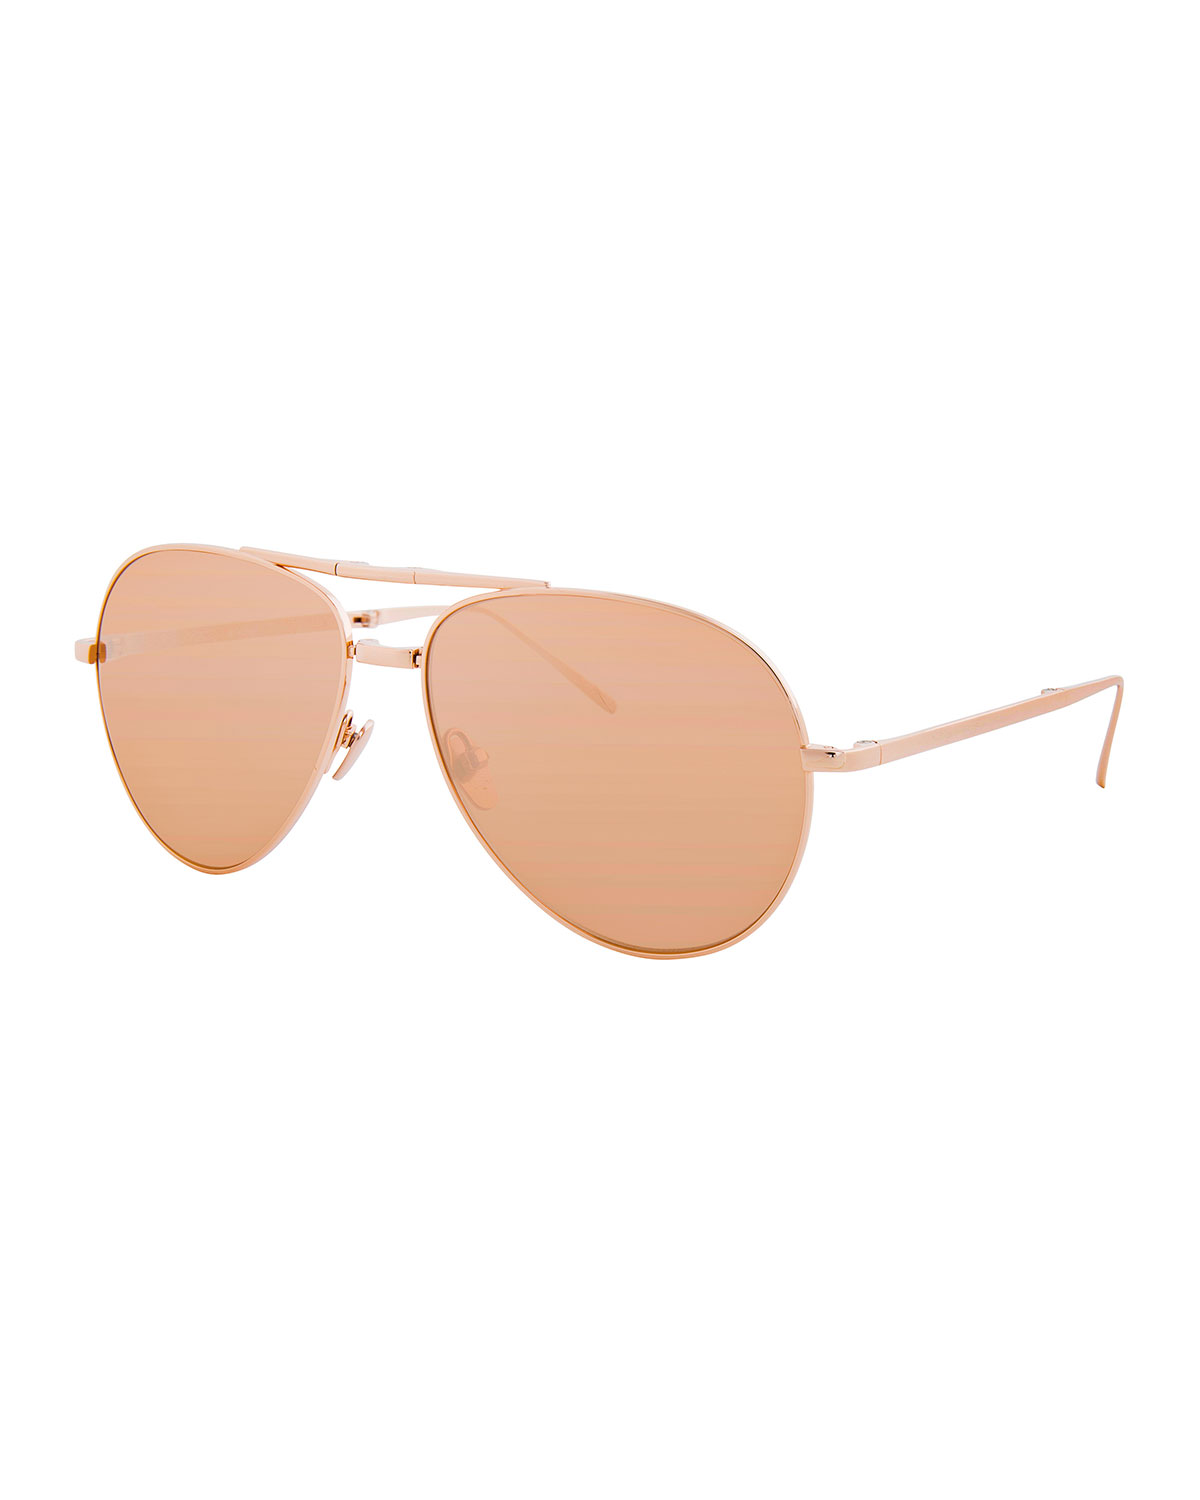 3c2ac1e0b98 Linda Farrow Foldable Aviator Sunglasses